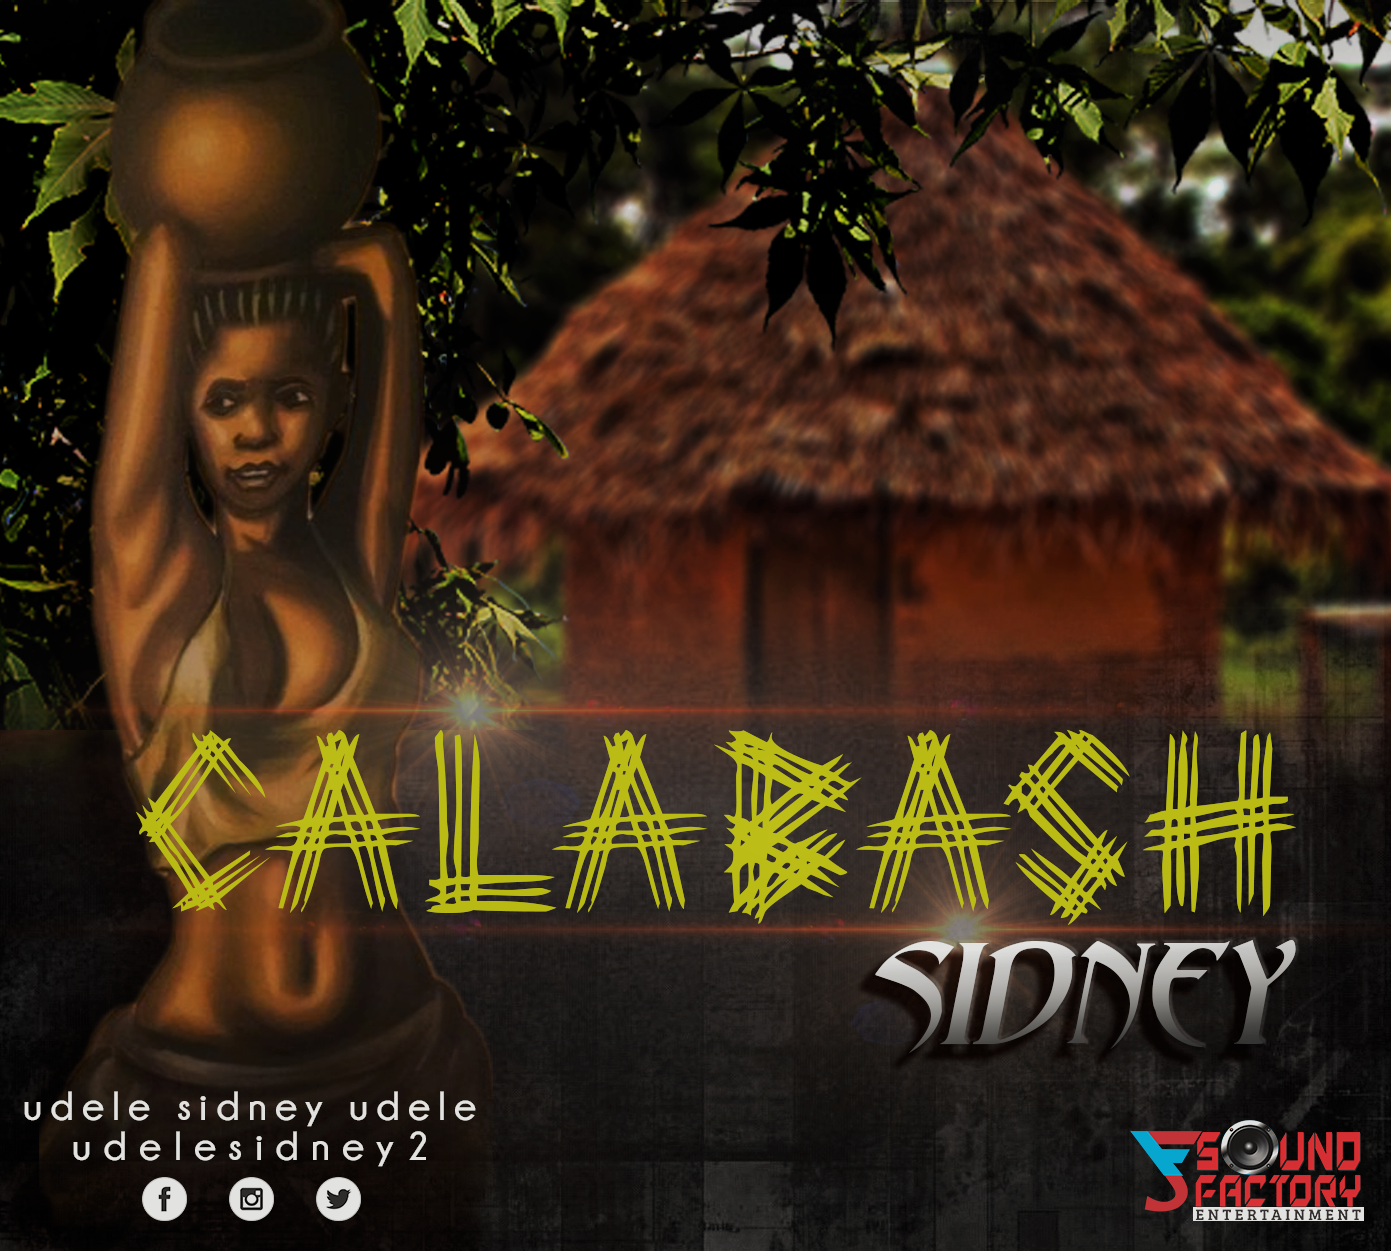 calabash single guys Follow the sun news for the latest headlines on myrtle beach, south carolina  news find daily local breaking news, opinion columns, videos and community.